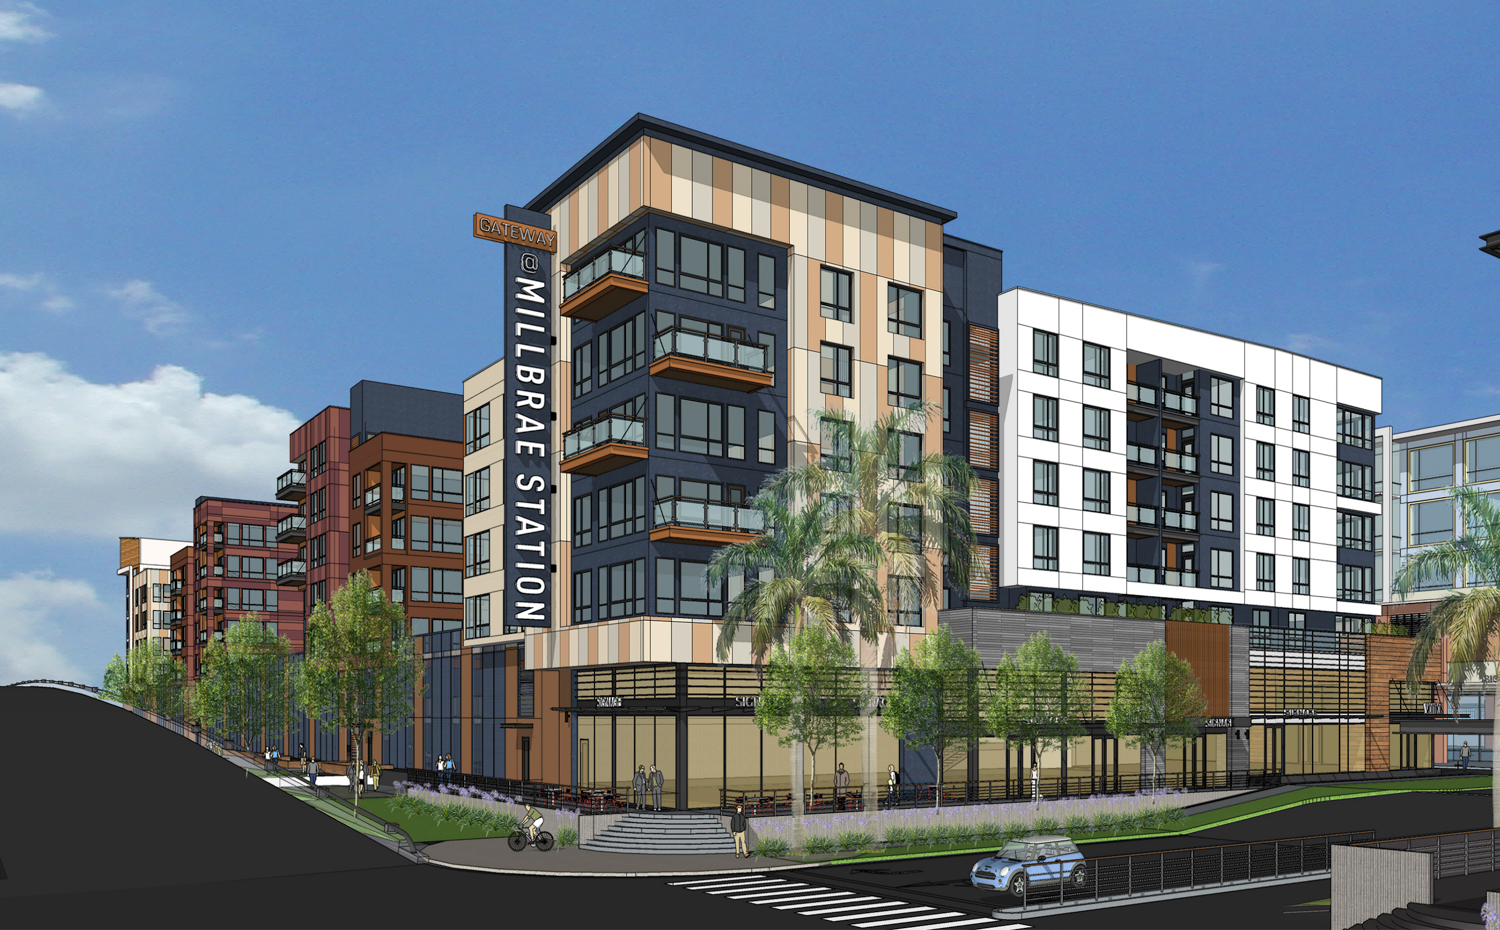 Gateway at Millbrae Station Parcel 5B apartment building, design by LPMD Architects